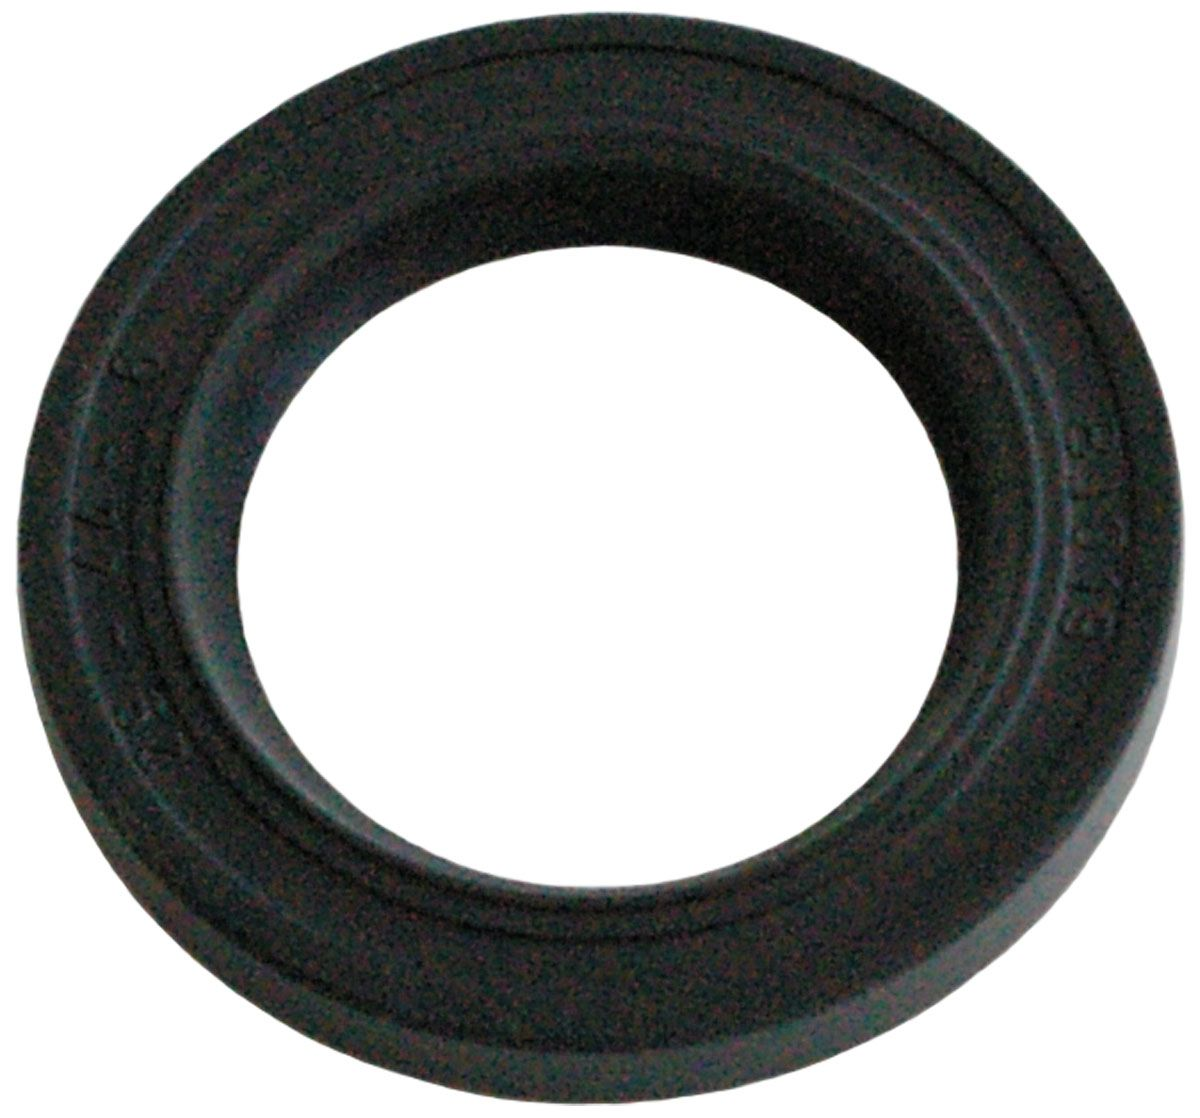 EMMARK FORDSON OIL SEAL ROCKER SHAFT - (D10026500)